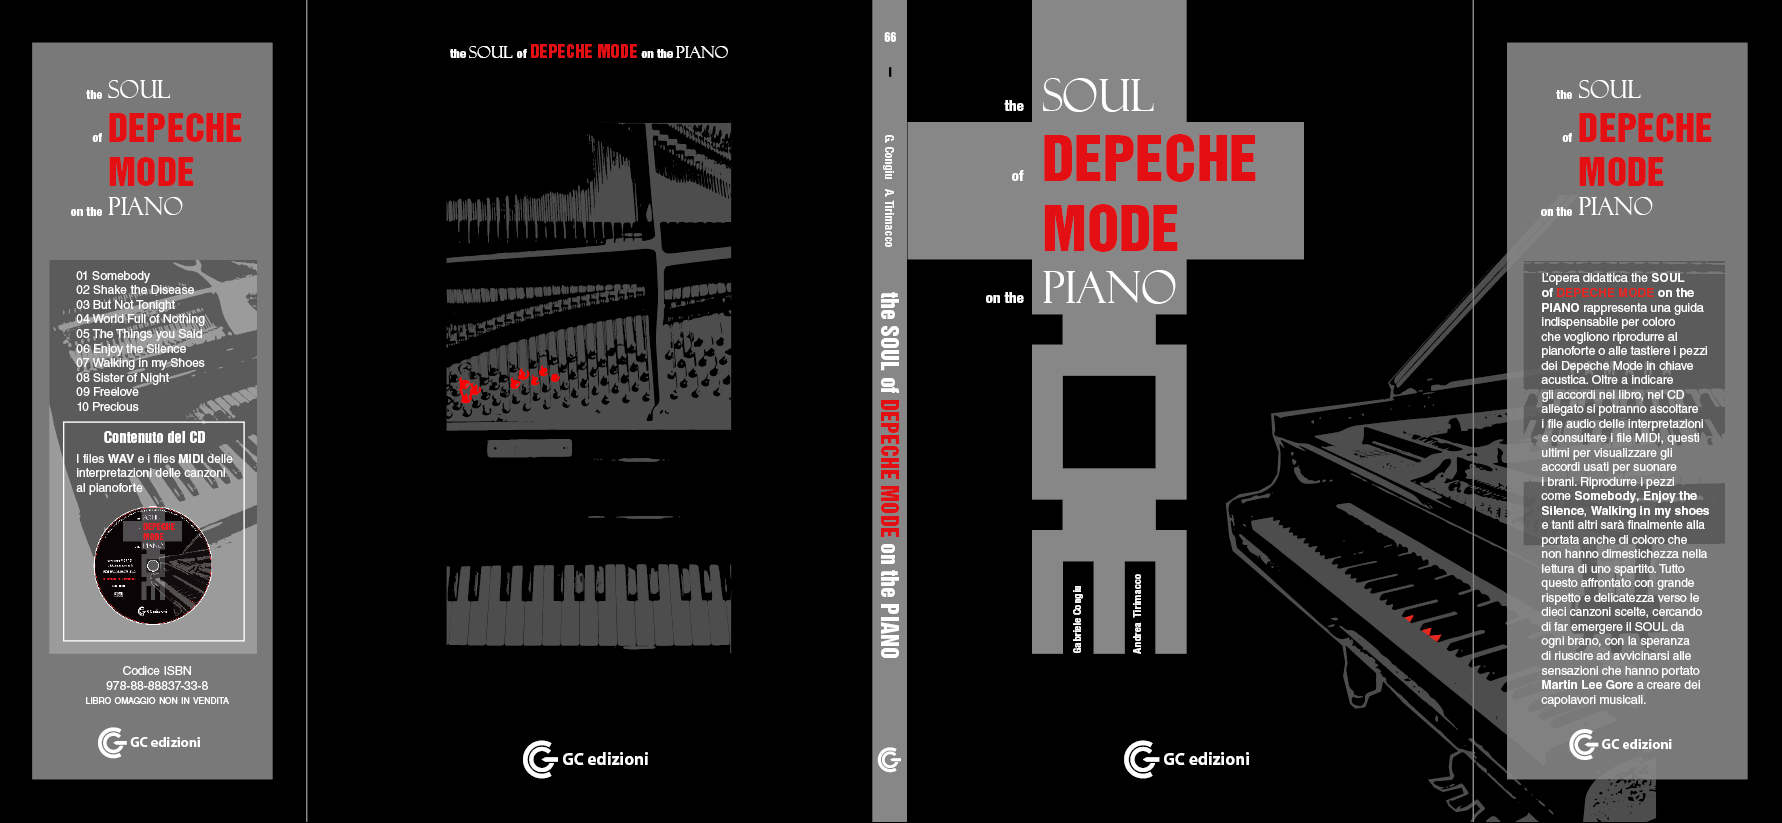 the soul of depeche mode on the piano. Black Bedroom Furniture Sets. Home Design Ideas